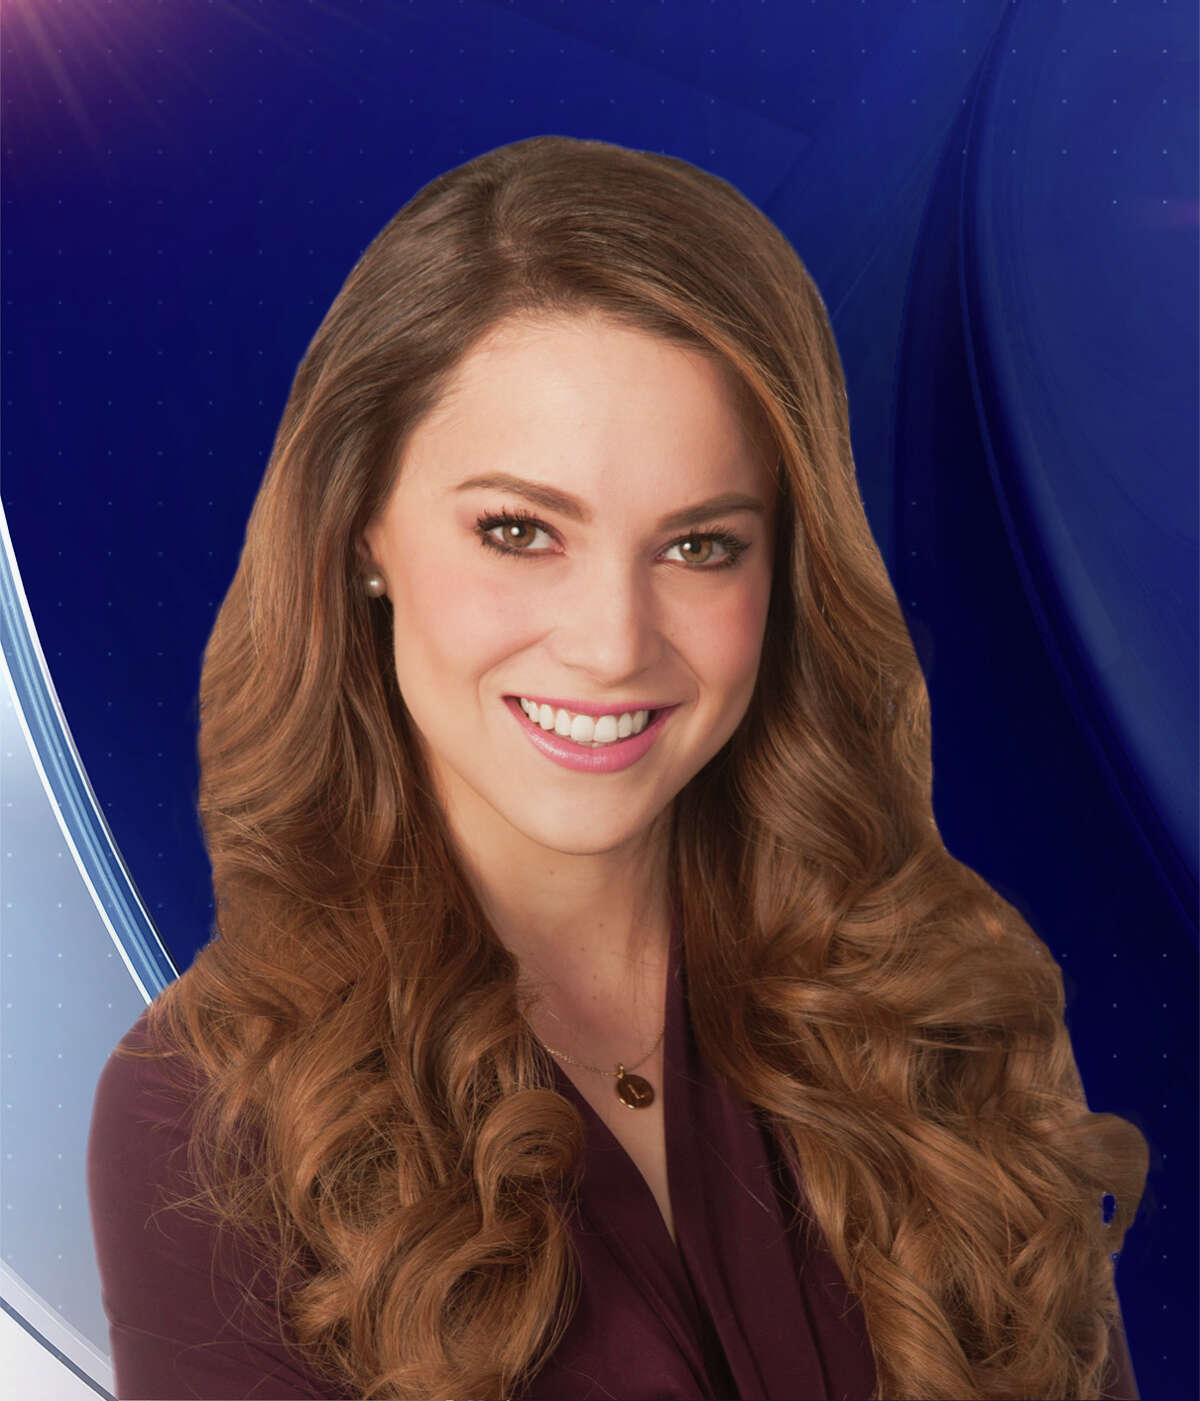 Ligia Uriarte joined Telemundo Houston as a traffic reporter and anchor in November 2014. She is also a local model and is a Miss Houston and Miss Kemah winner.